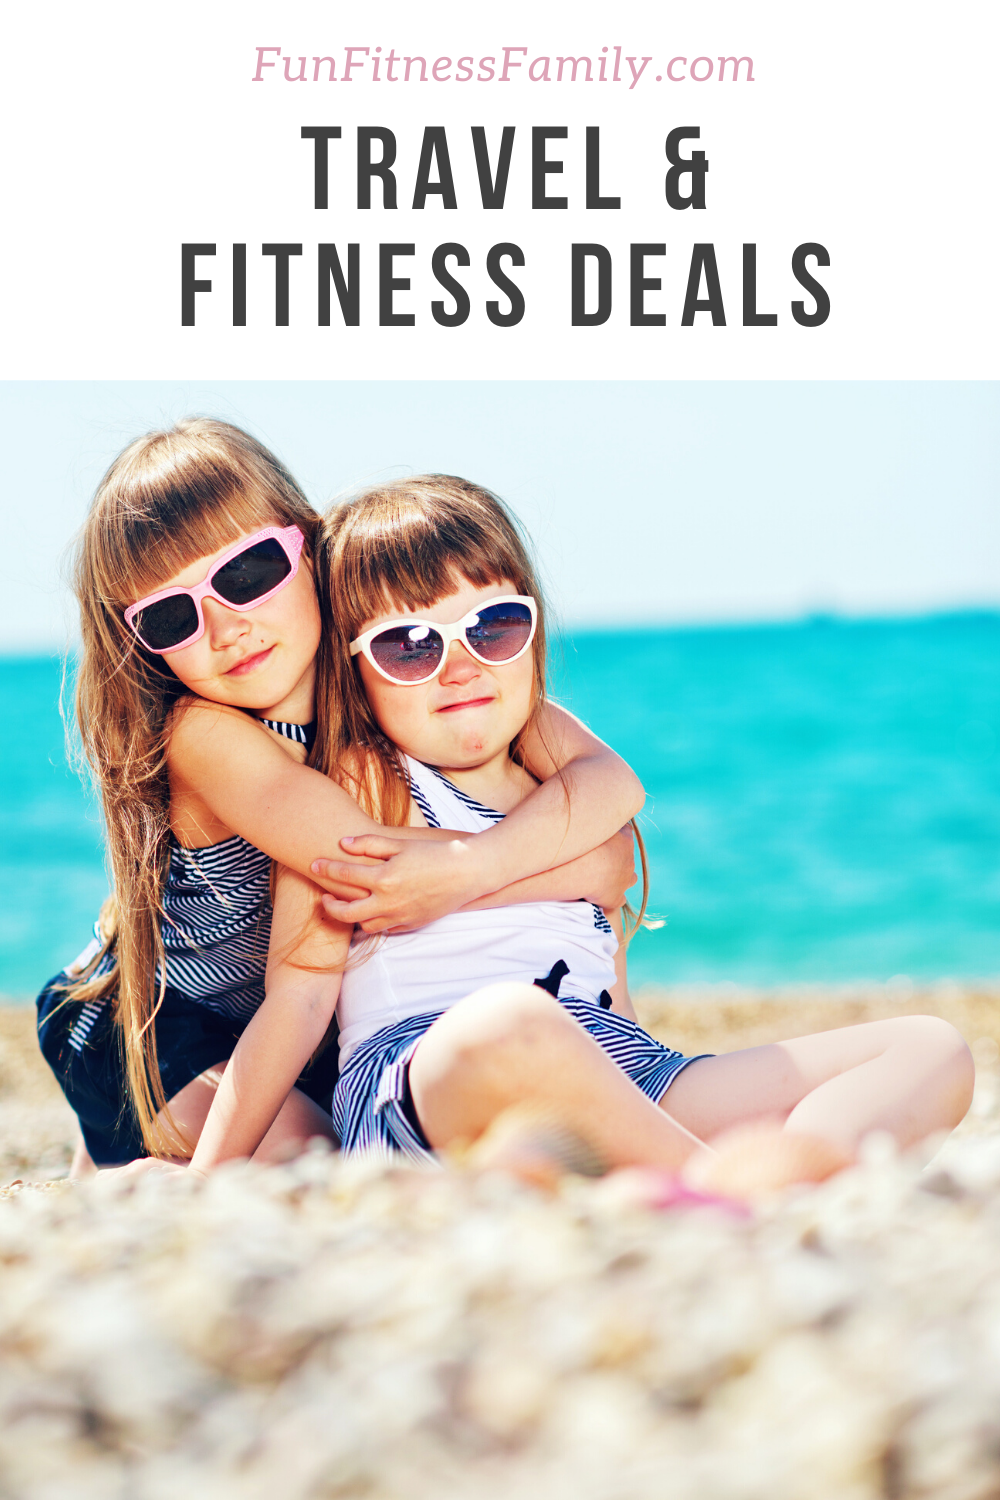 Looking for travel deals and giveaways? Check out our site for money-saving offers on family fun, show tickets, area events, fitness products, and travel activities! #giveaways #traveldeals #familytravel